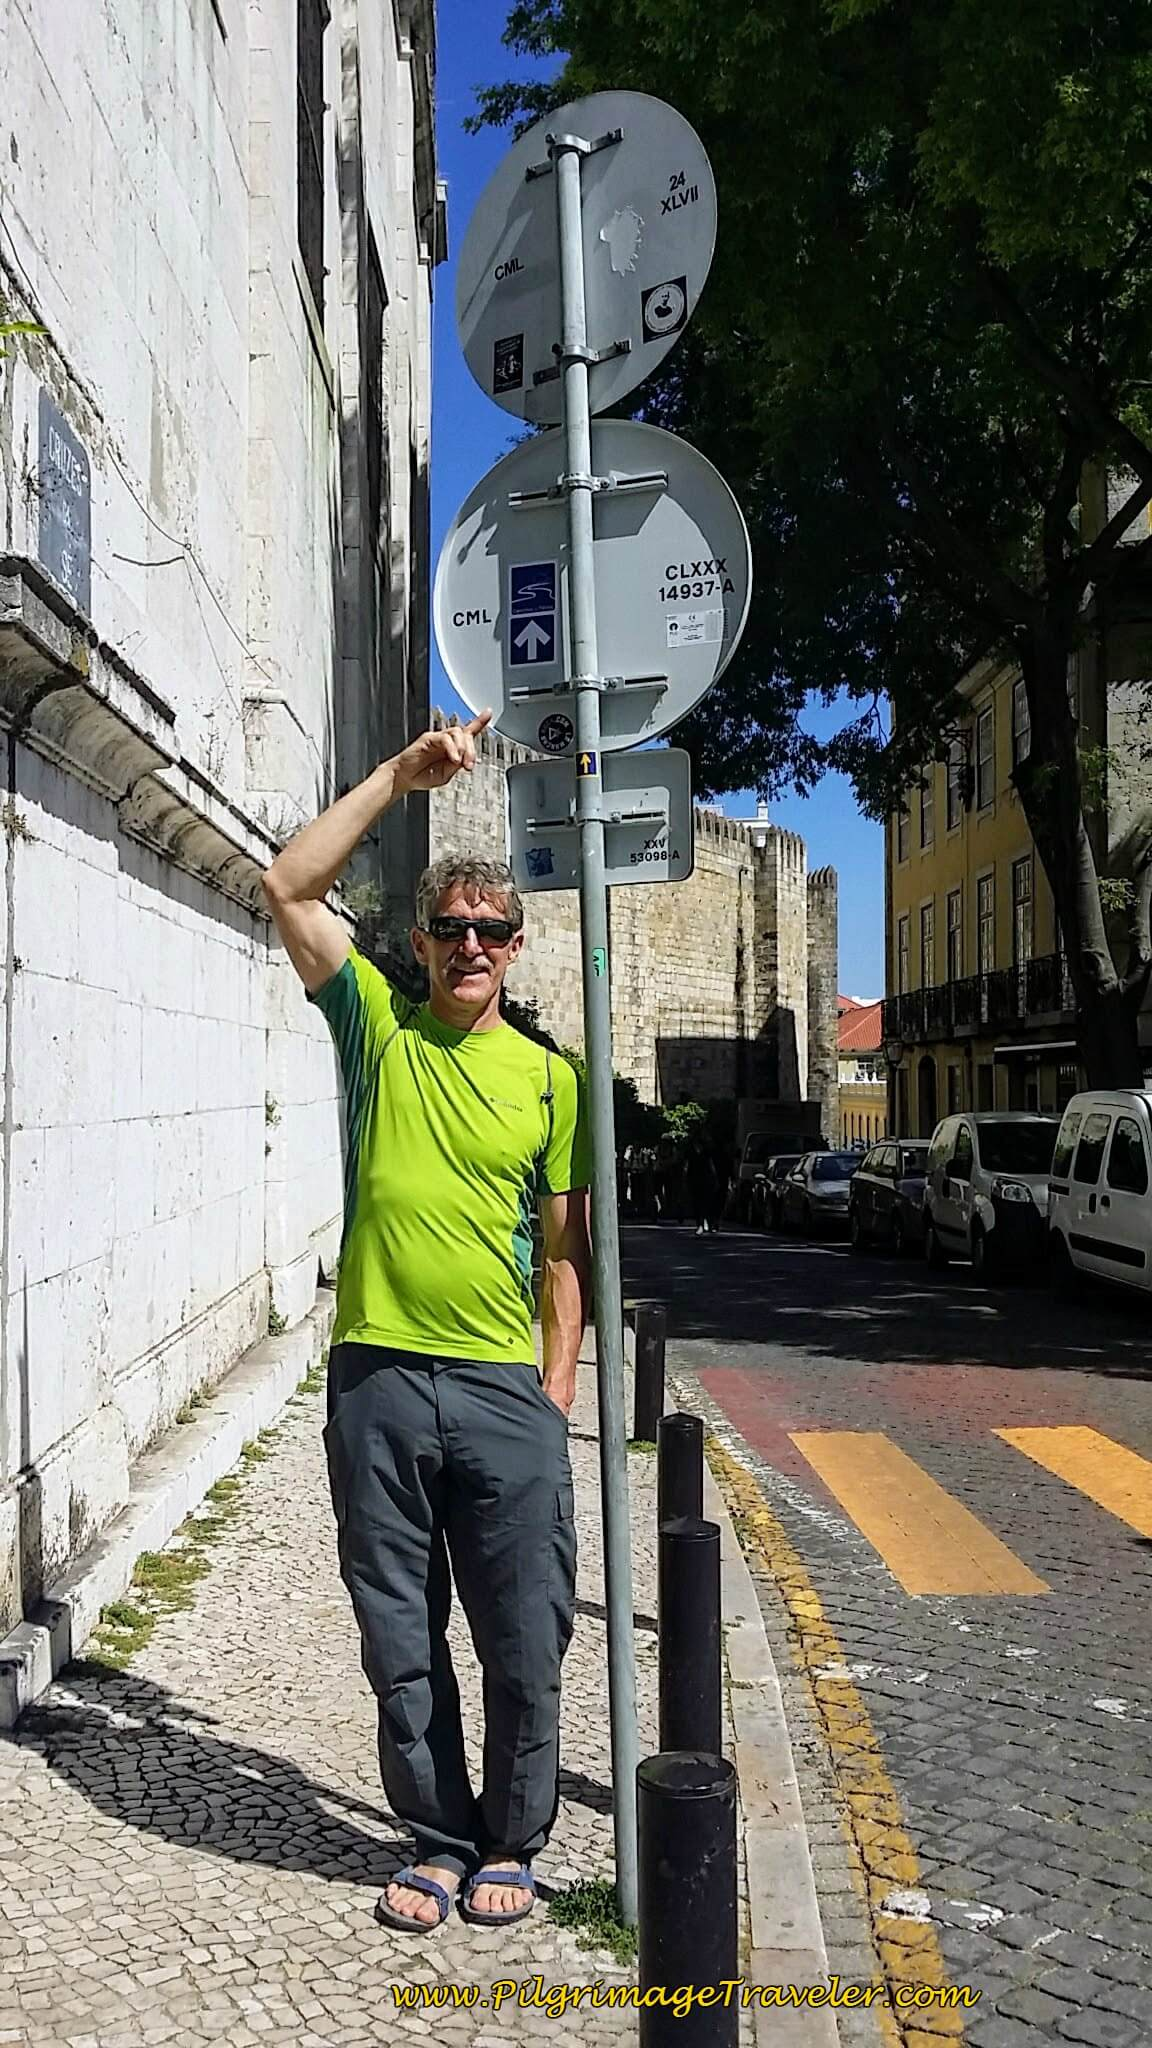 Rich Pointing to Arrow on Street Sign Around the Right of the Sé de Lisboa